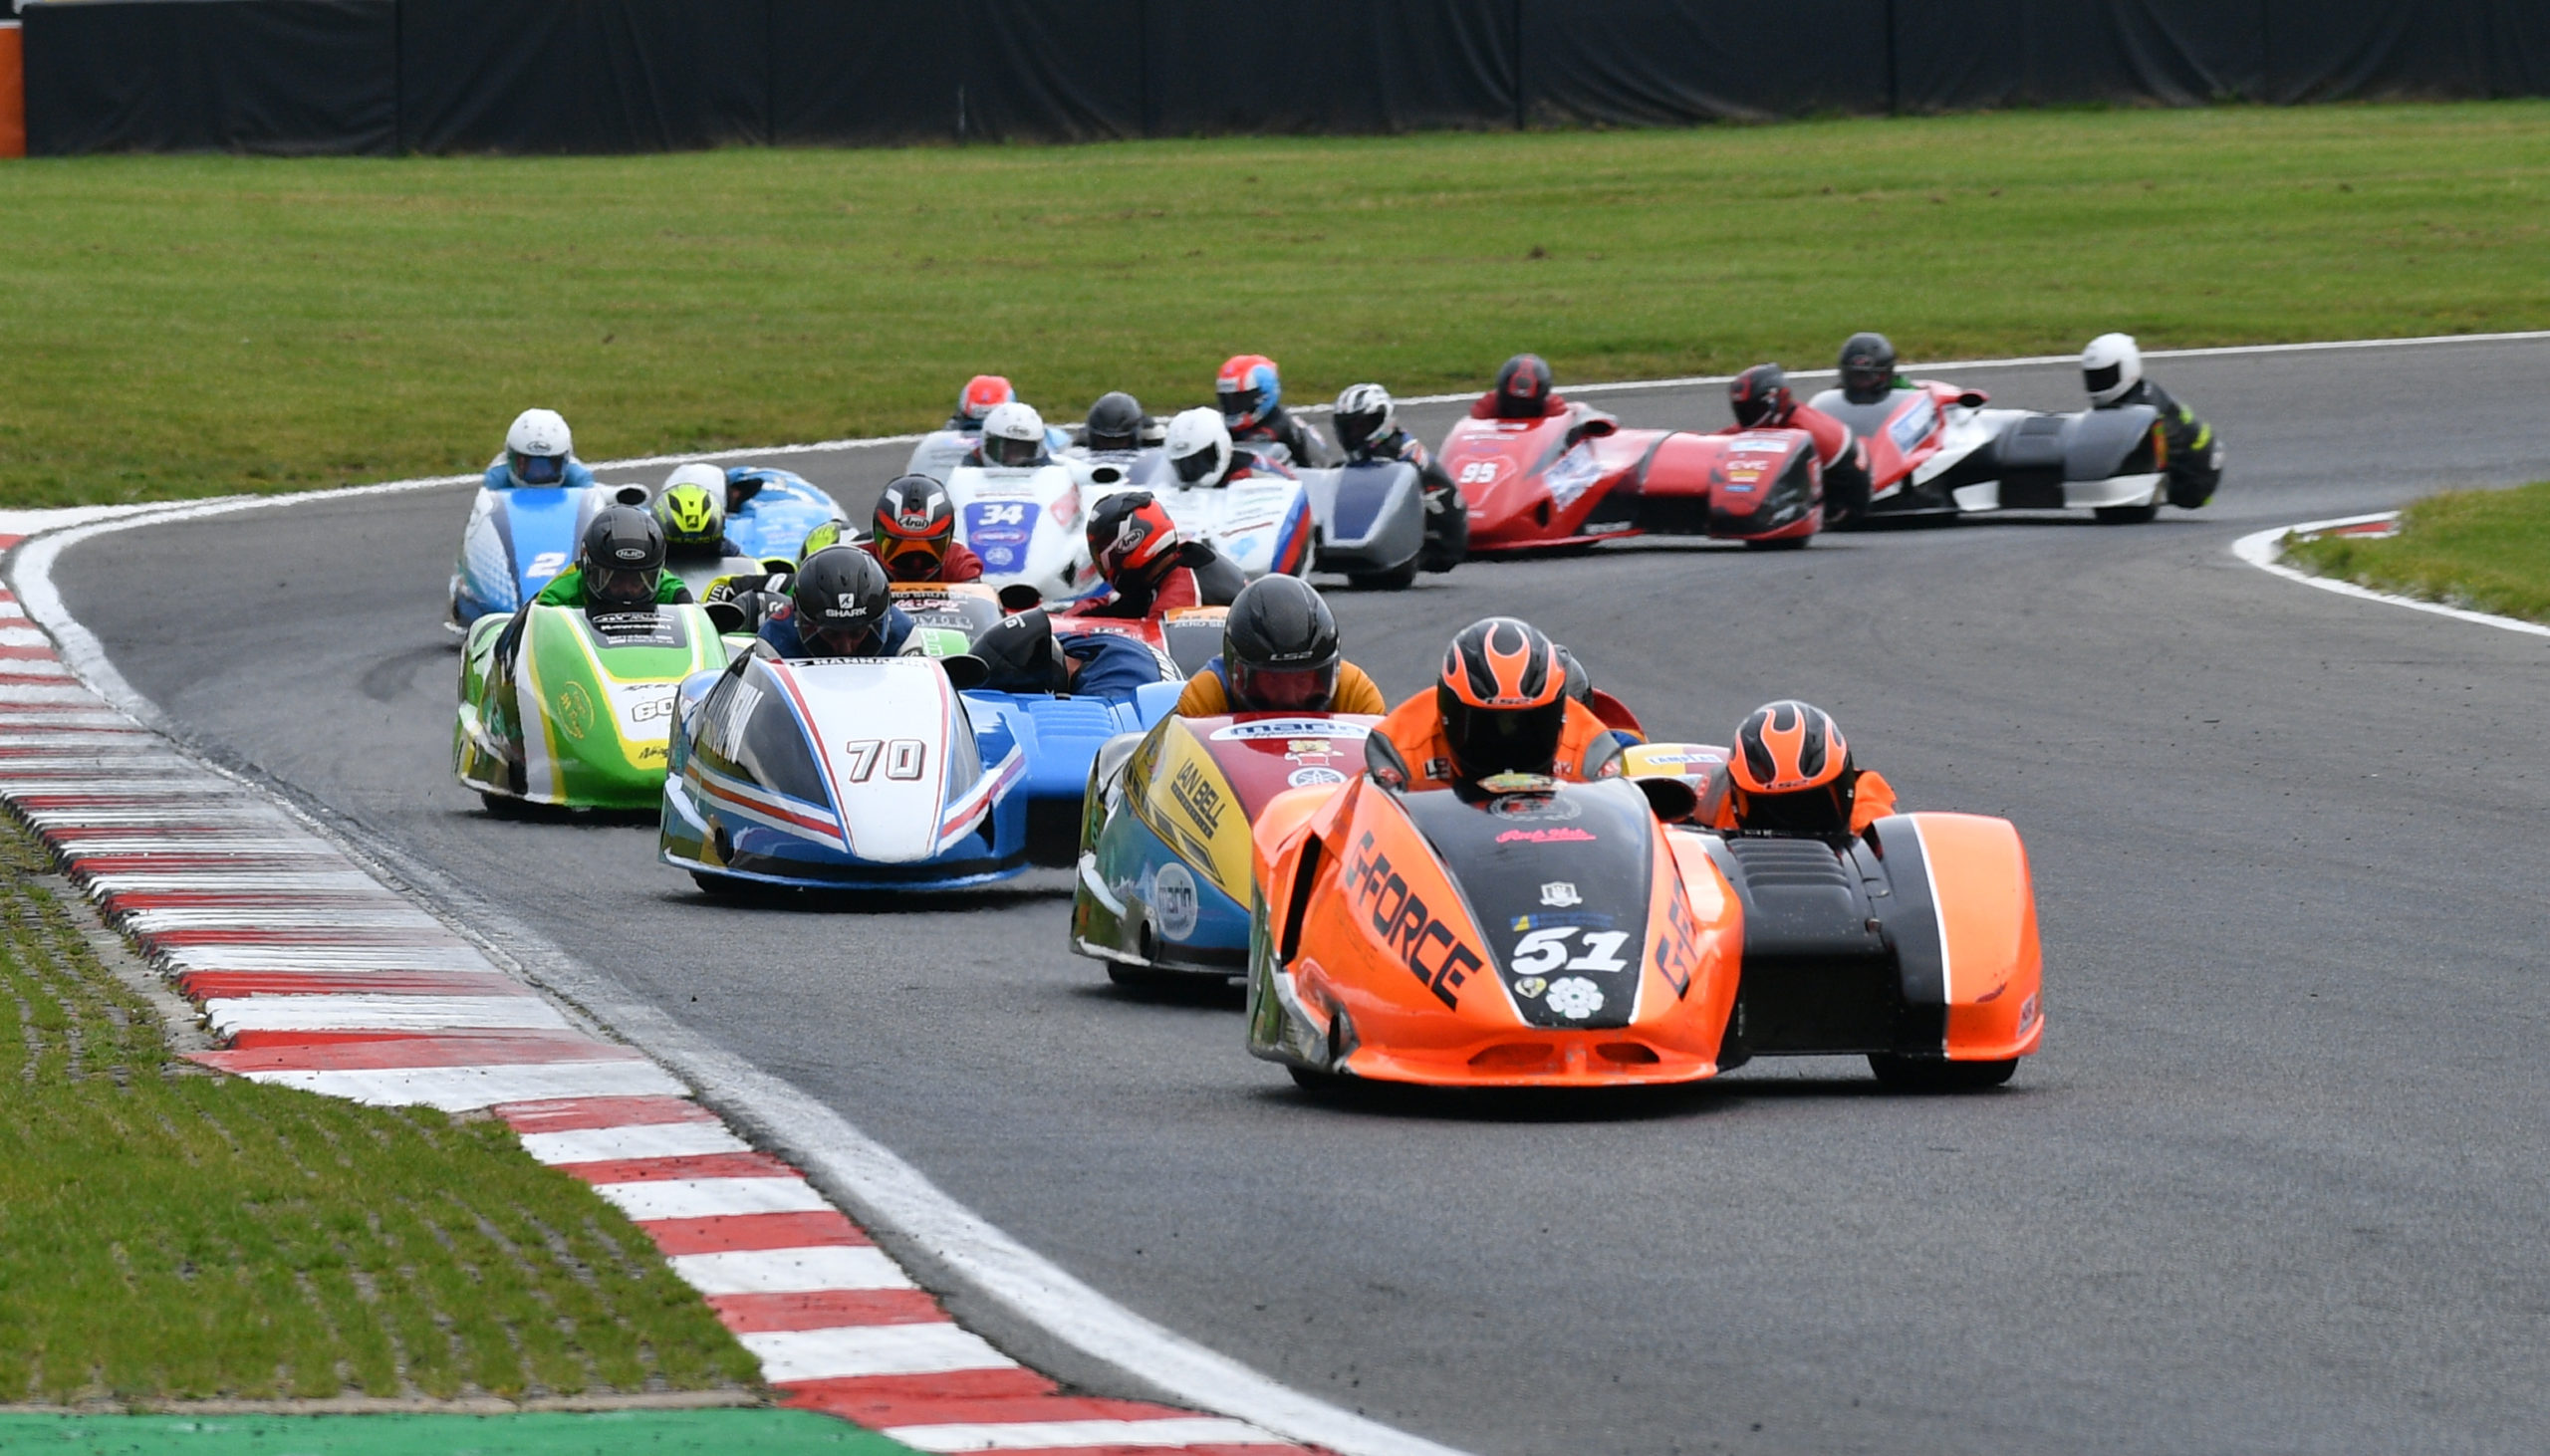 Sidecar action from Brands Hatch